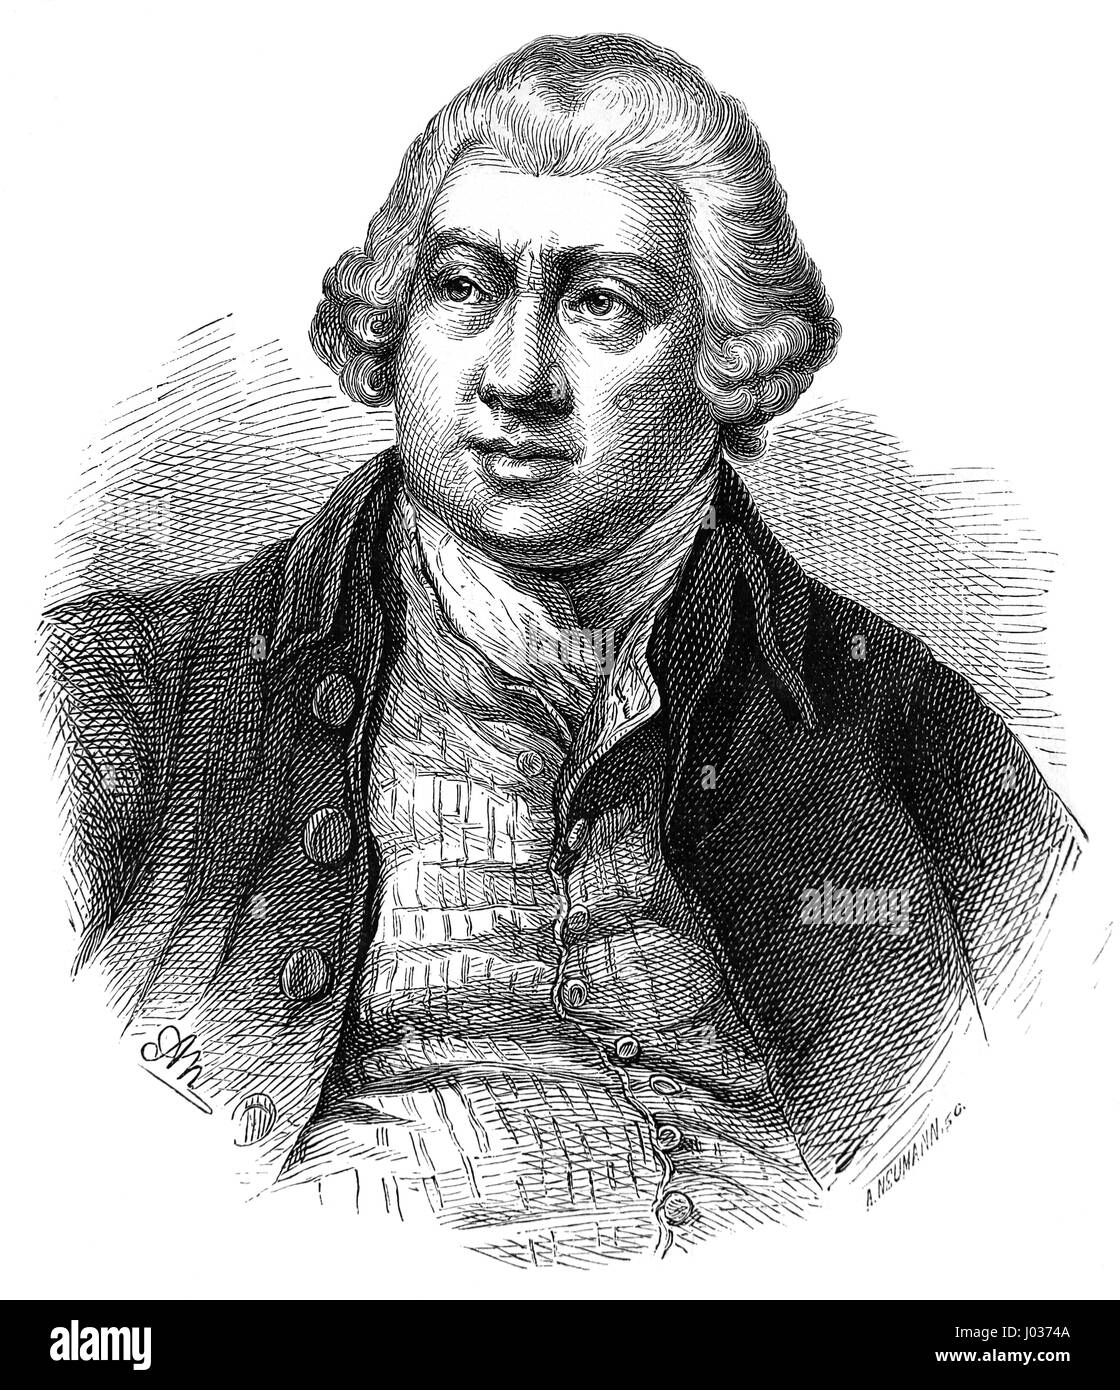 Richard Arkwright (1732-1792). Inventing the spinning frame. Engraving. Nuestro Siglo, 1883. Spanish edition. Stock Photo